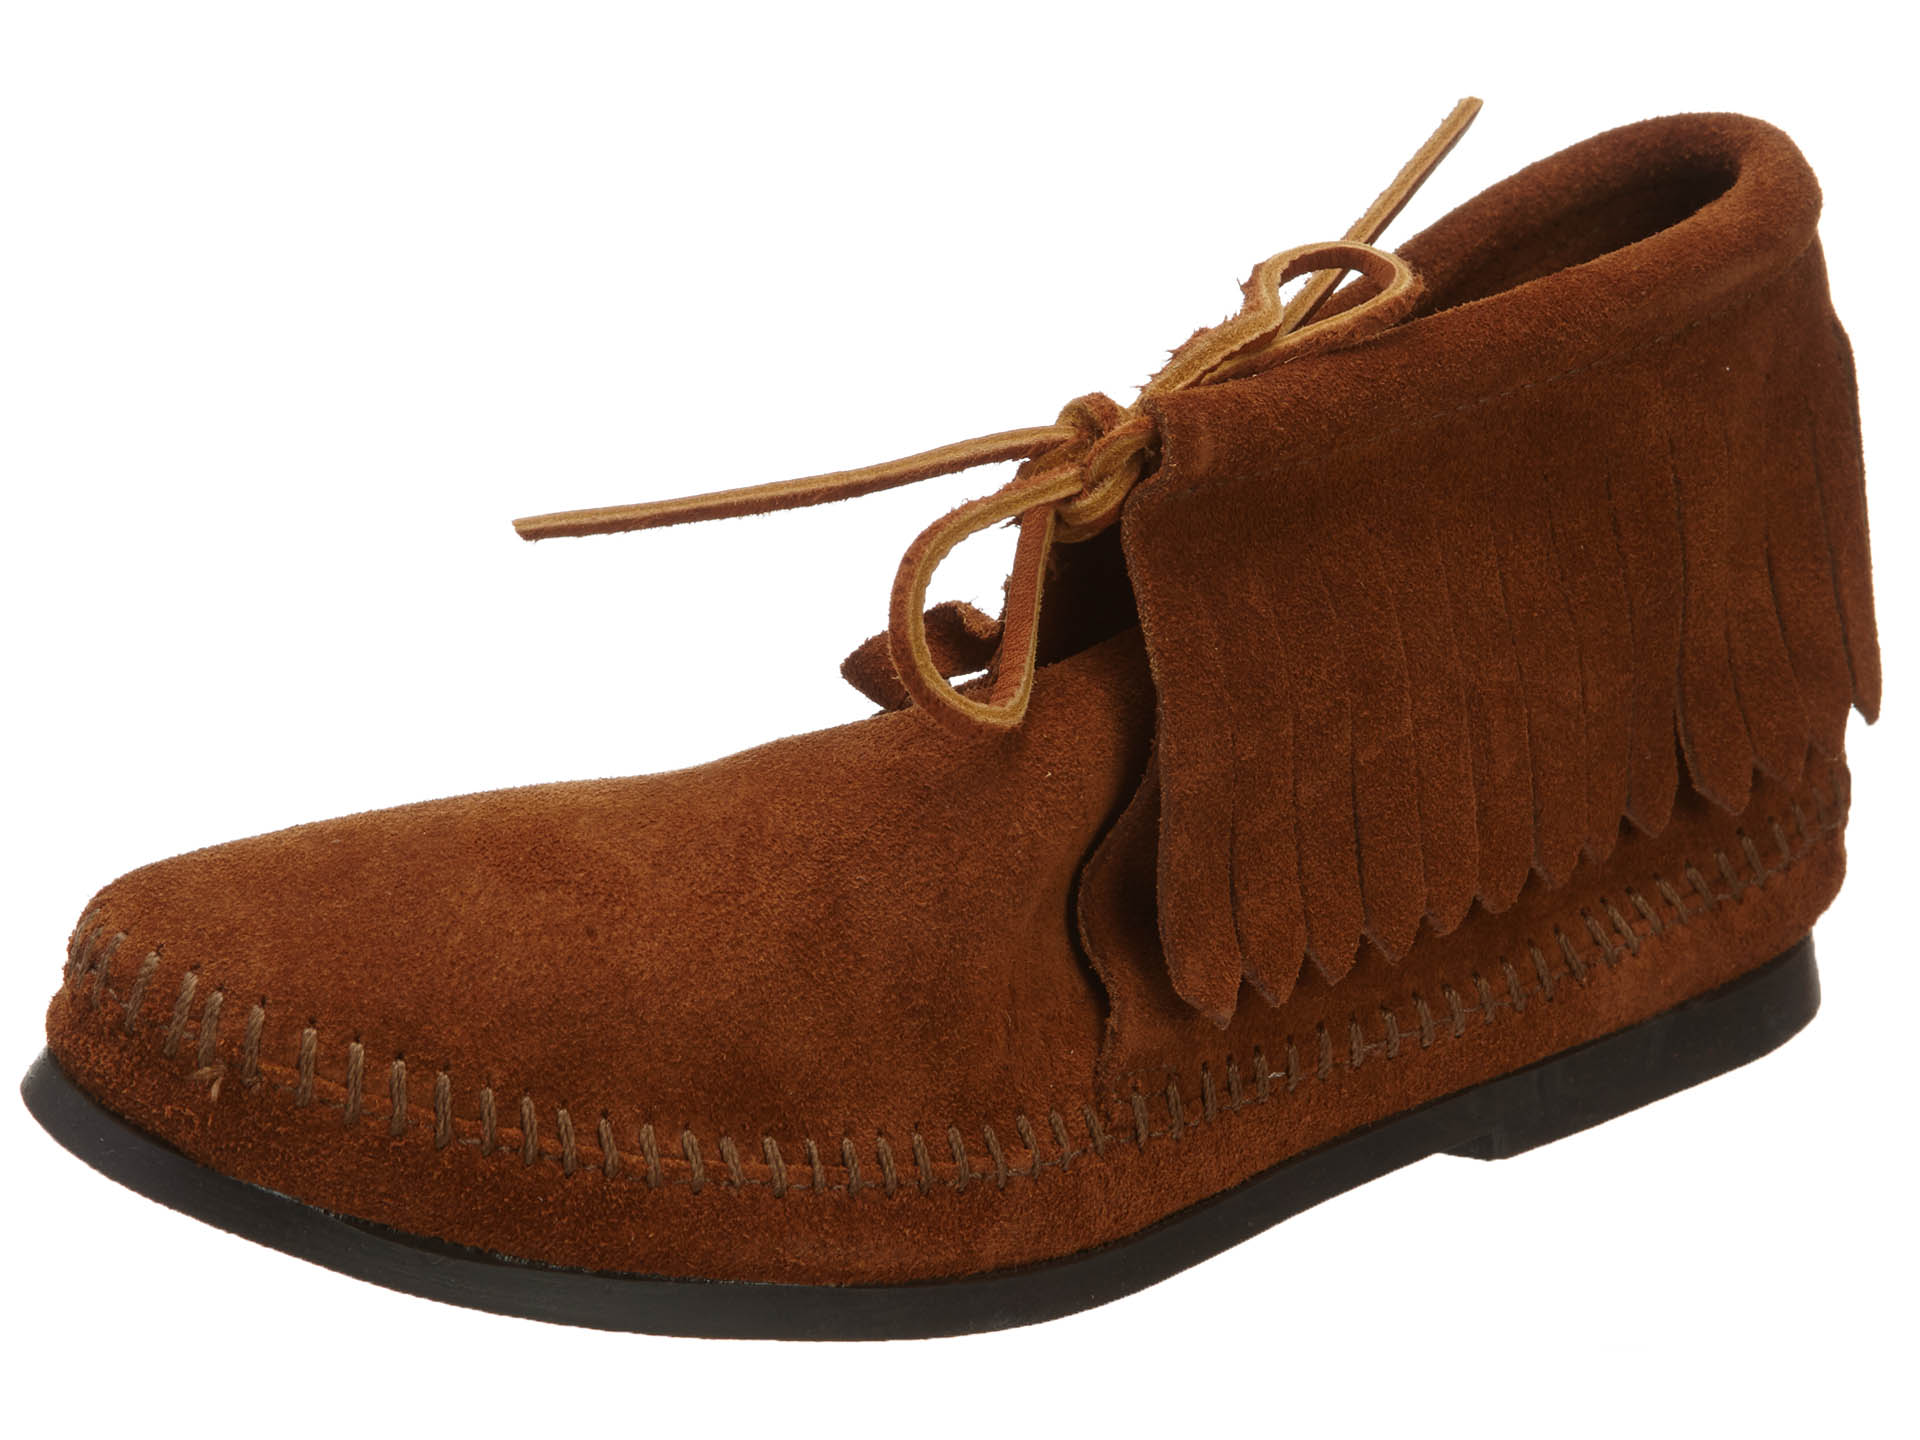 Minnetonka Moccasin classic fringe boot style no.:682 by